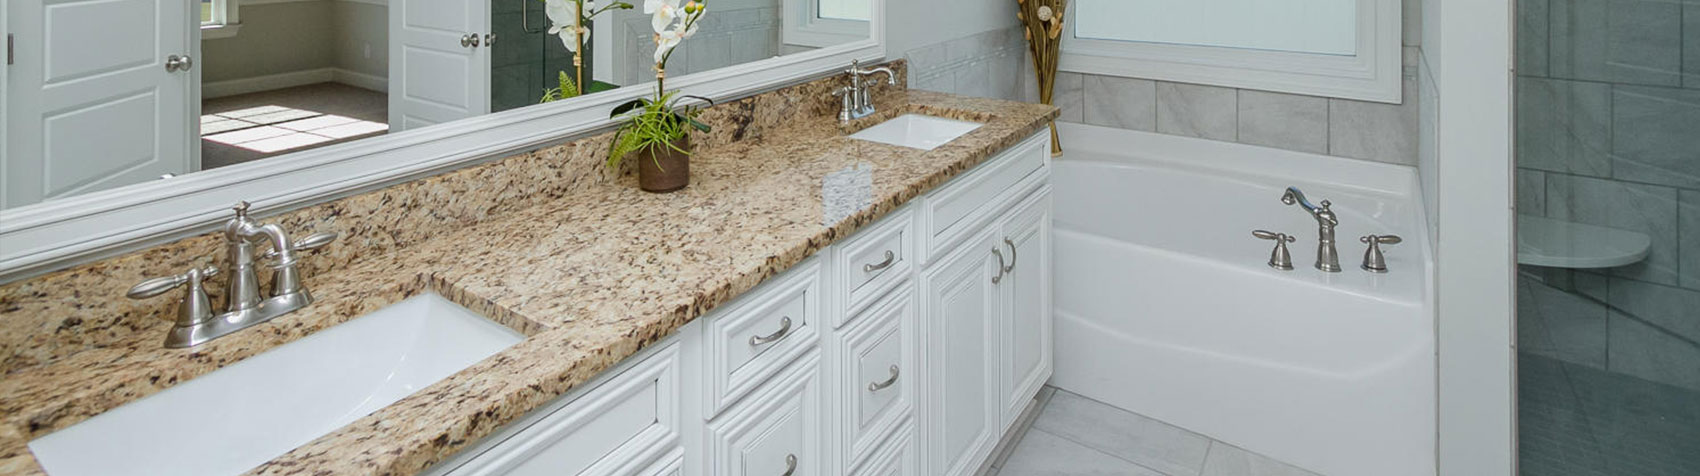 Stallings Ridge Bathroom | Stallings Ridge